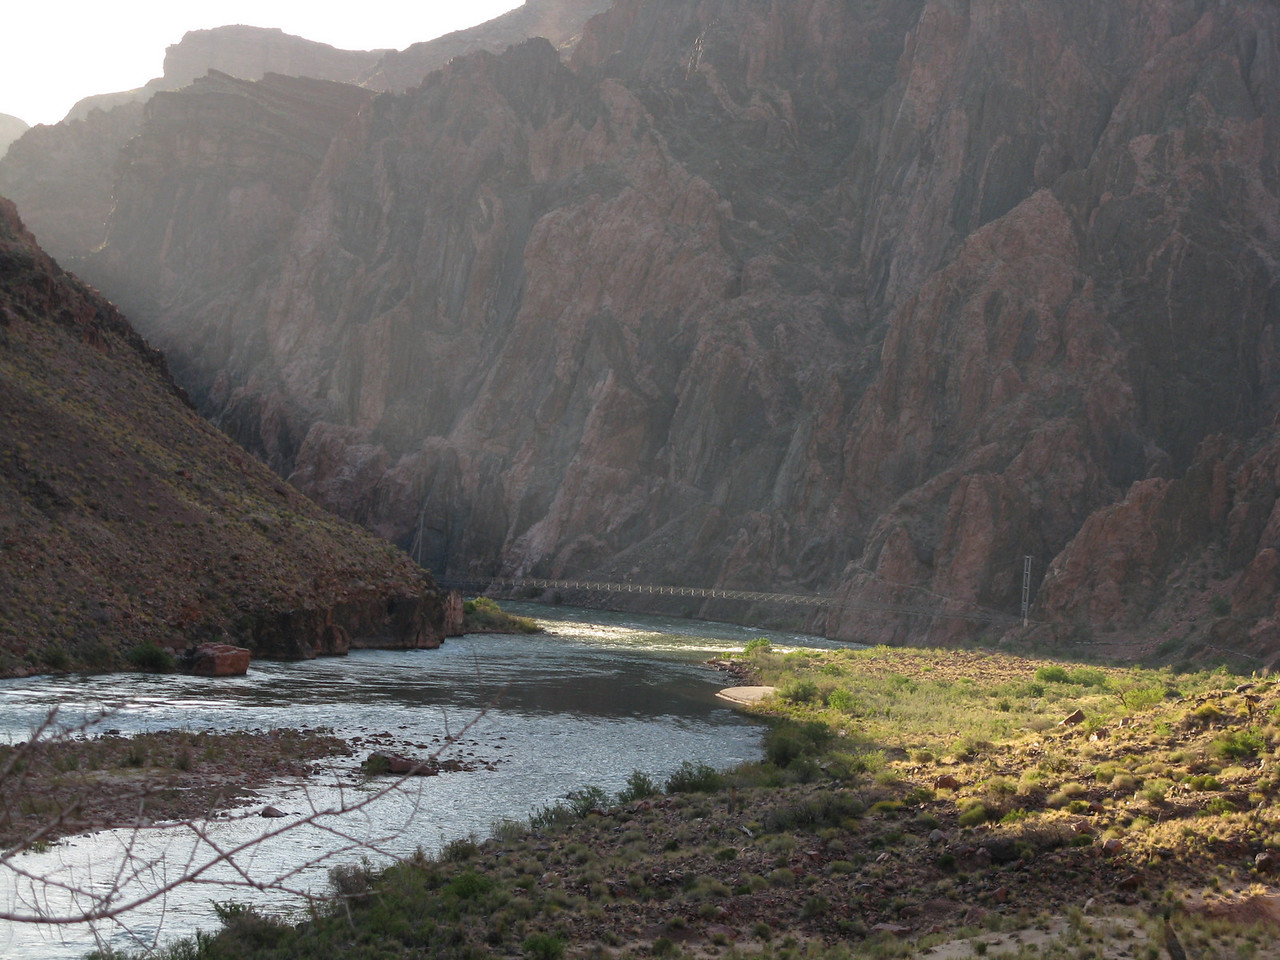 The sunlight begins to reach the river at the bottom of the canyon with the Silver Bridge in the distance.